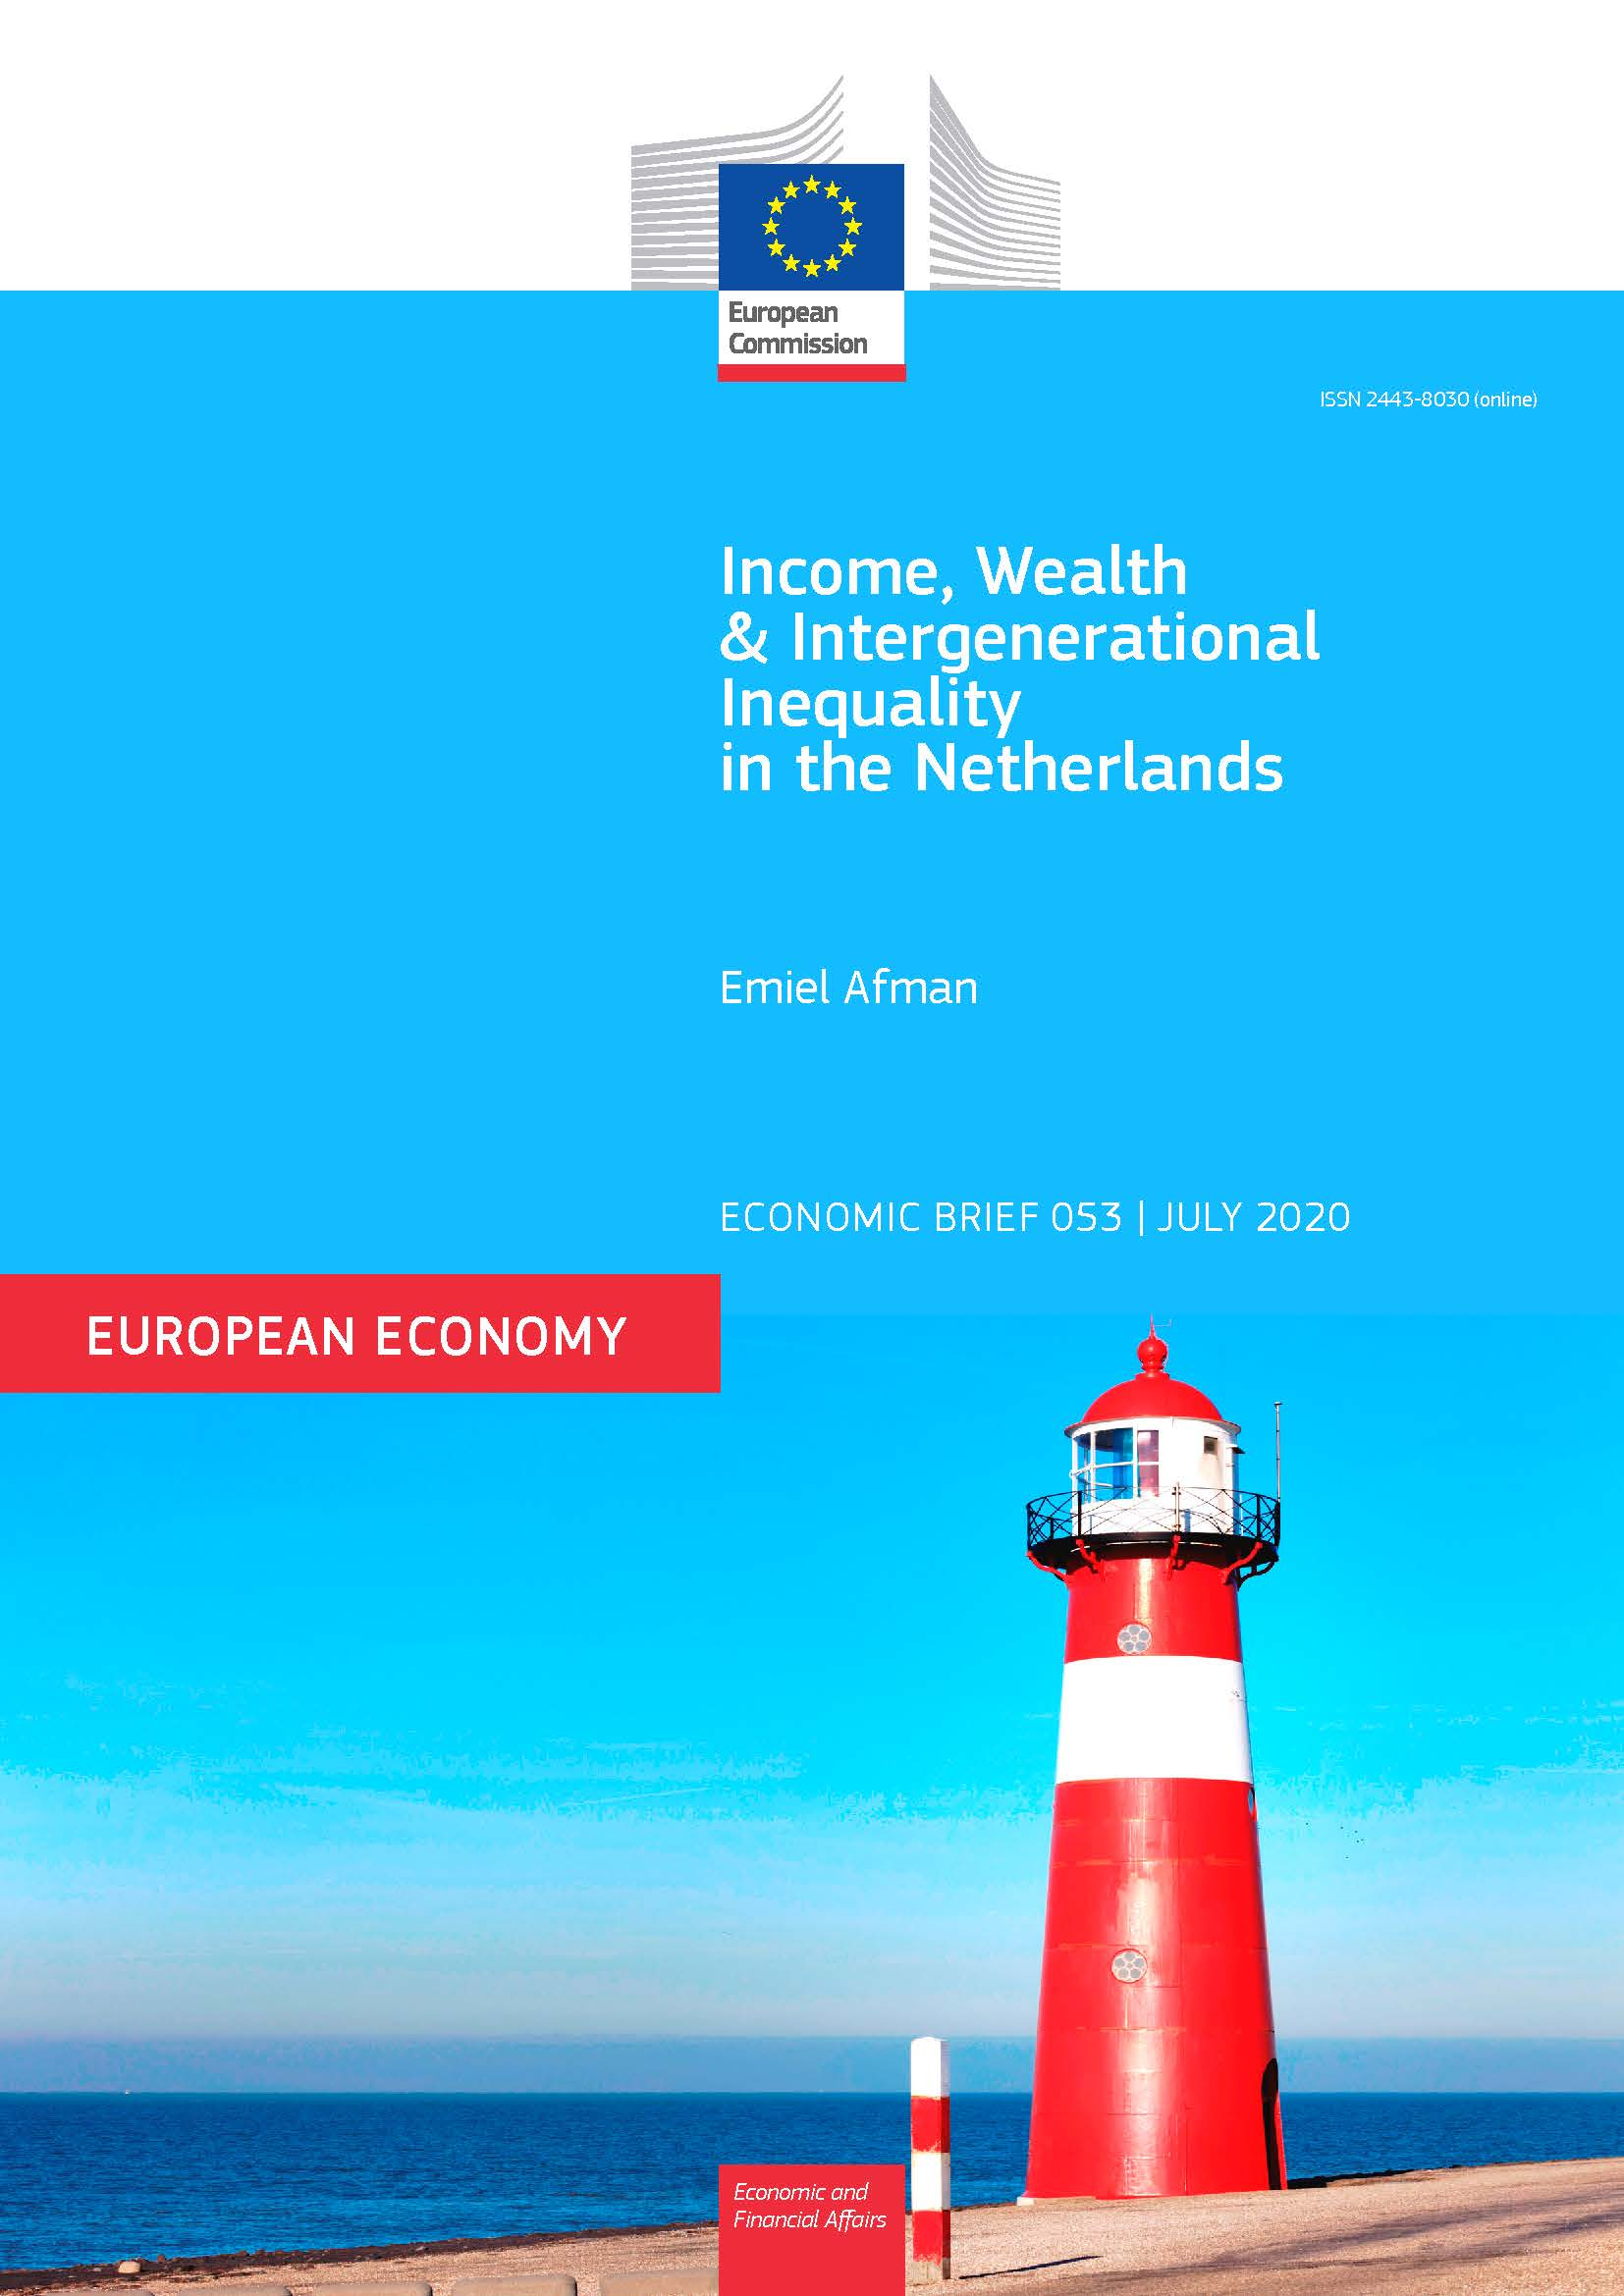 Income, Wealth and Intergenerational Inequality in the Netherlands